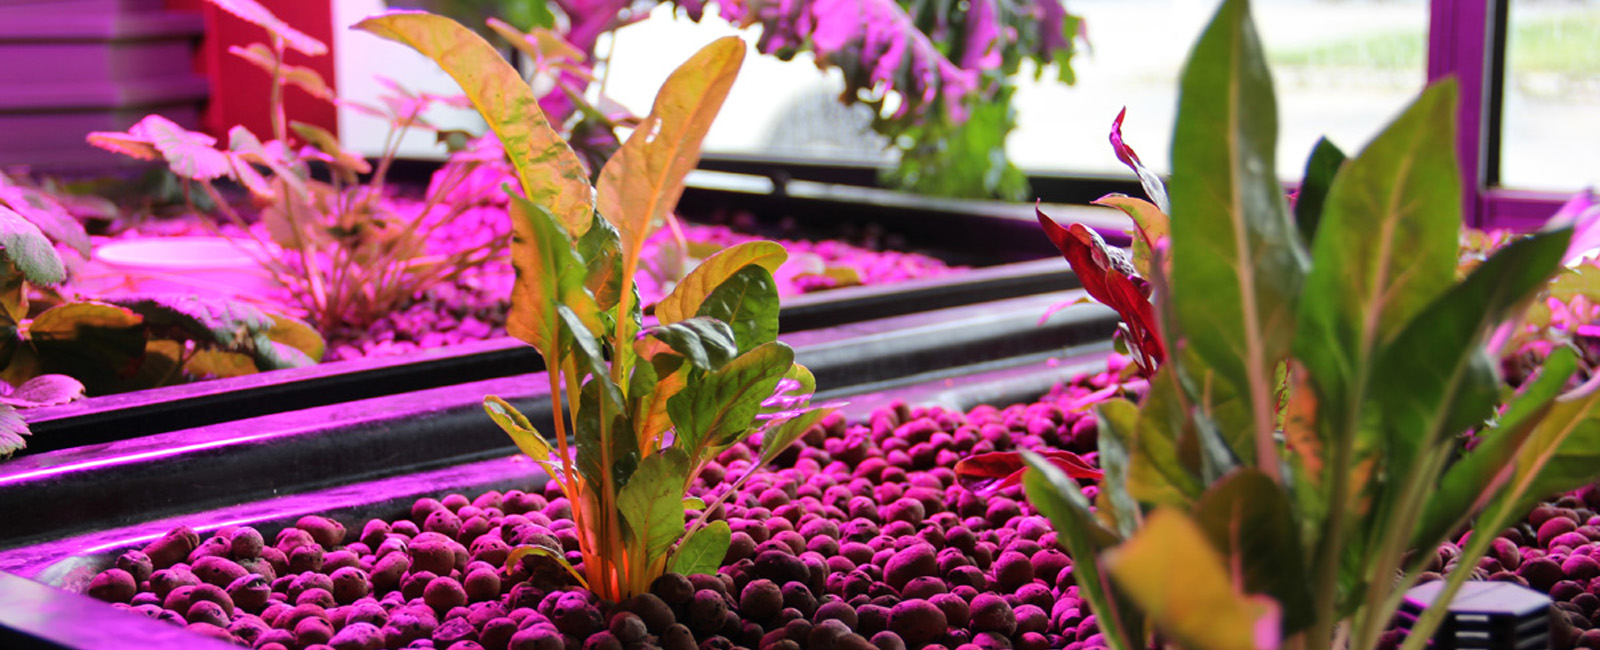 Aquaponic, Hydroponic, Organic and Biological Growing Systems